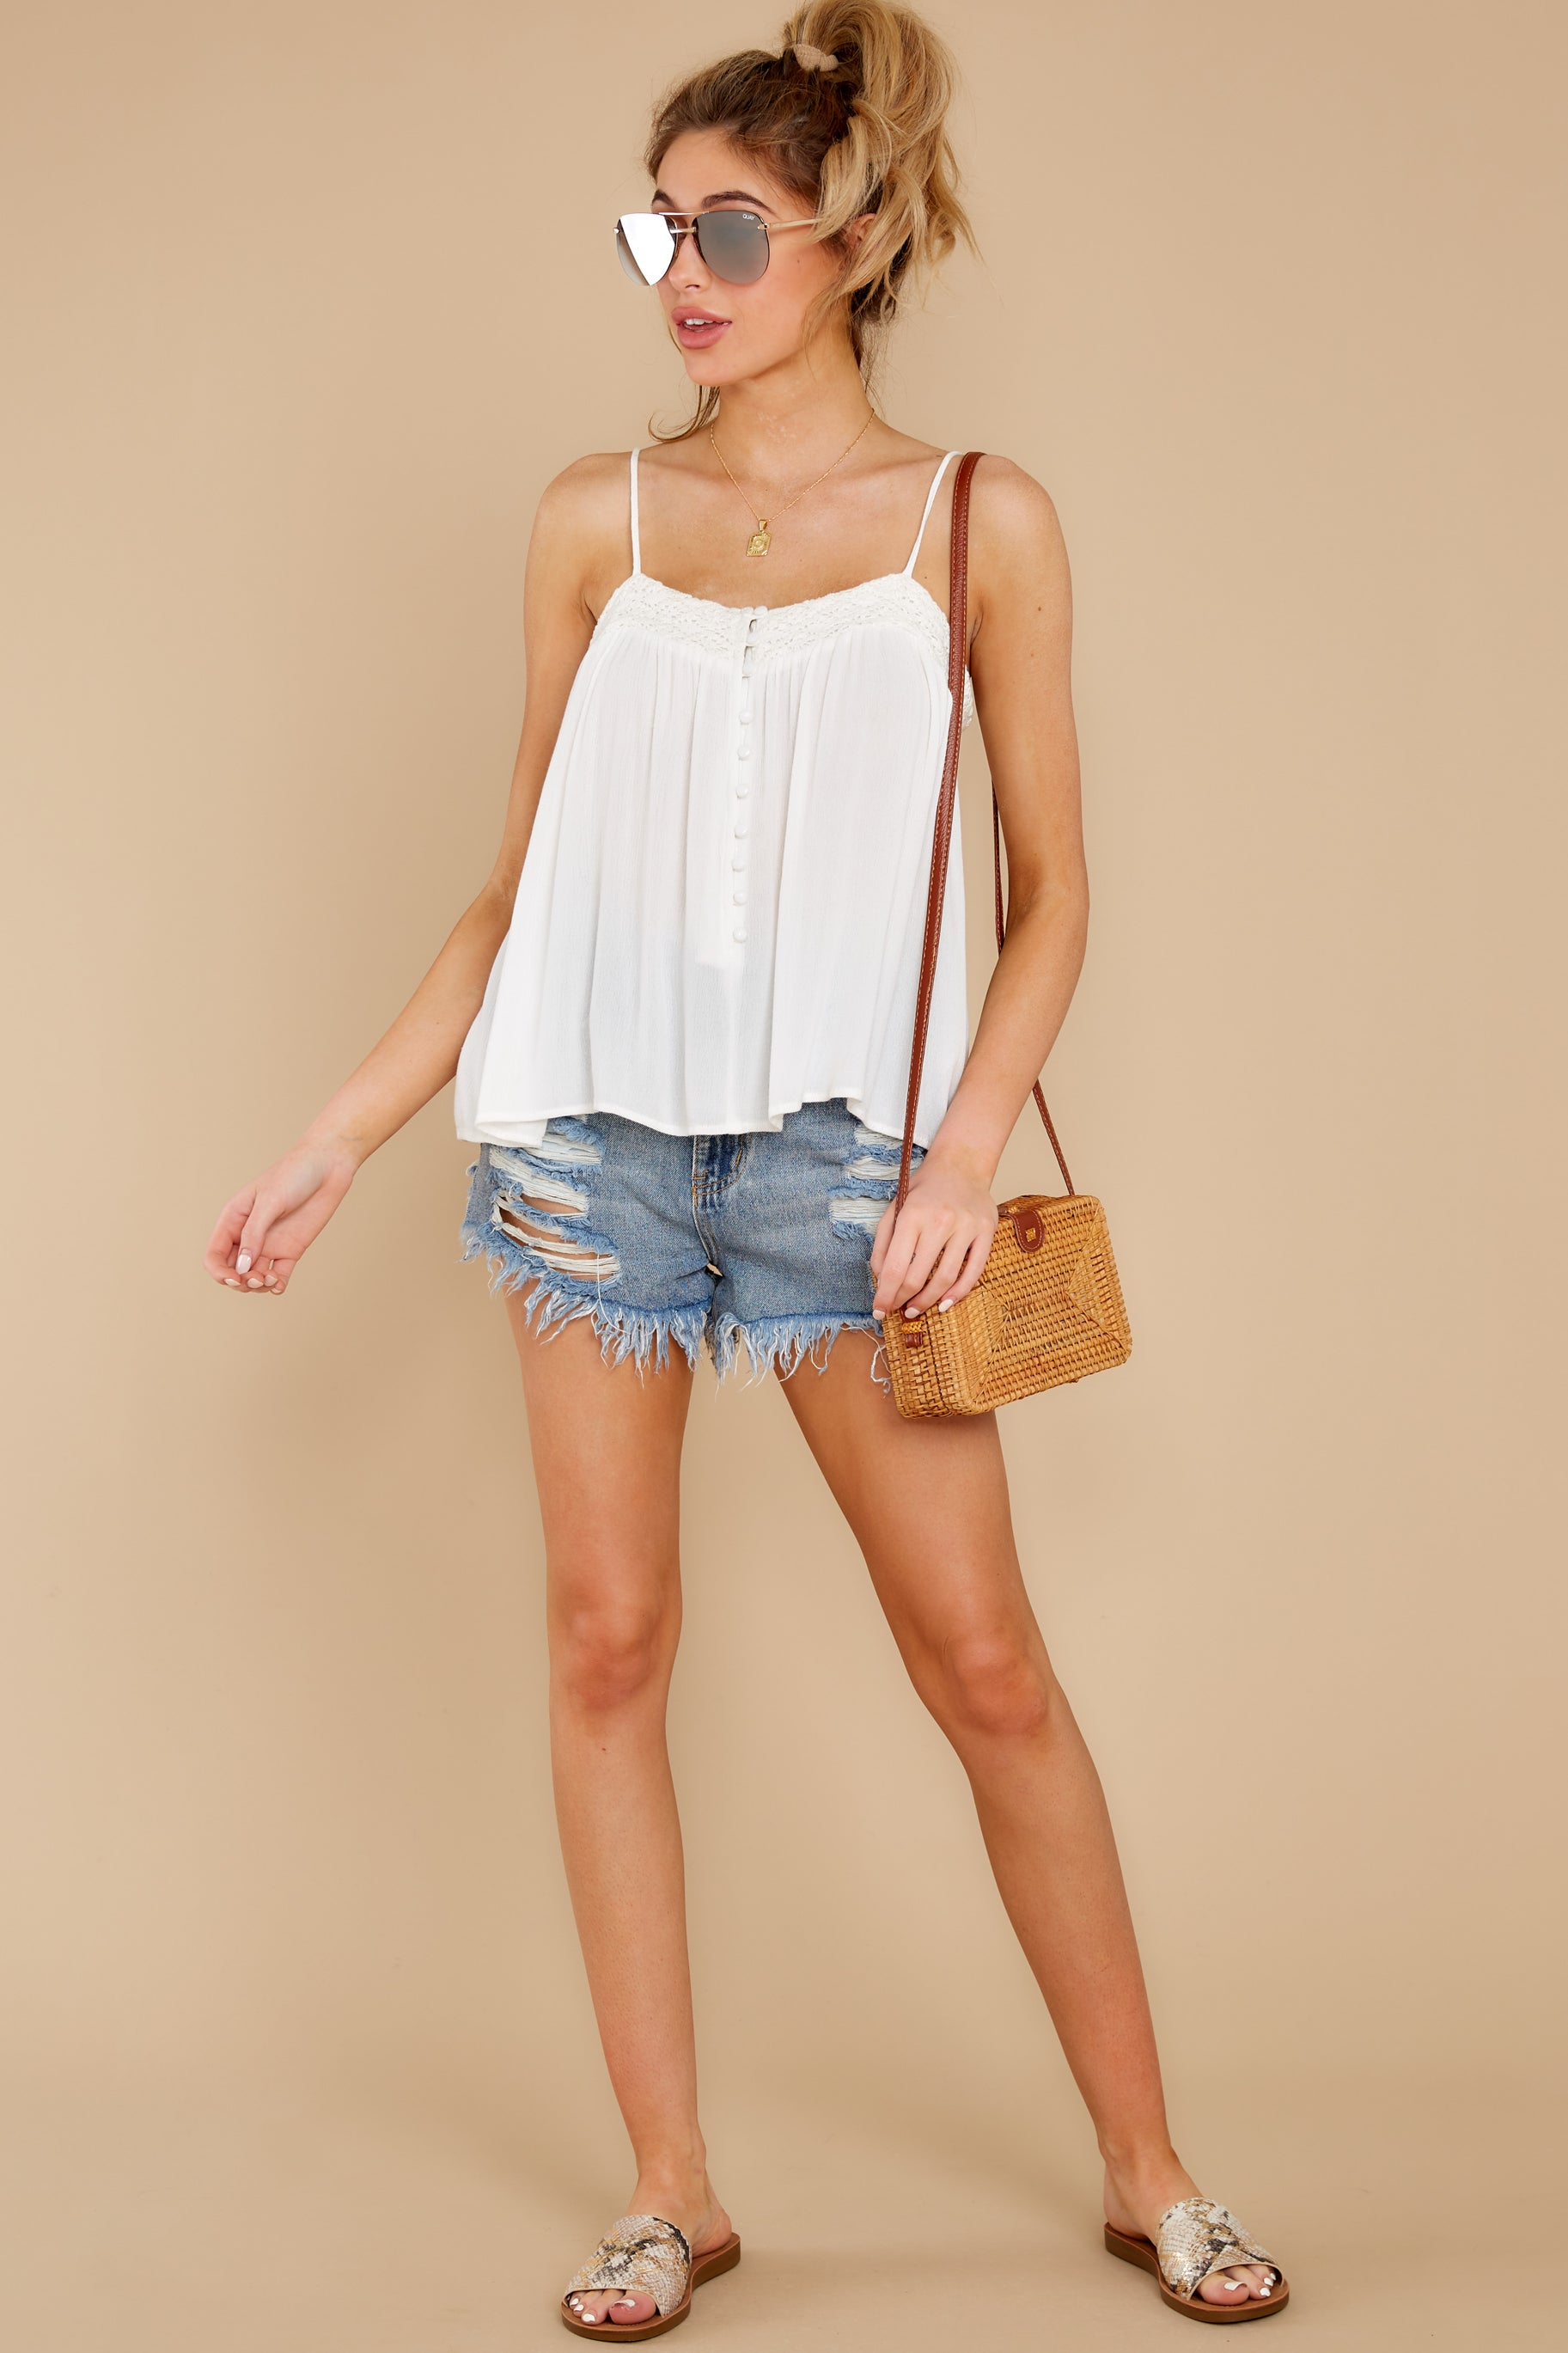 4 Without Us White Crochet Tank Top at reddress.com